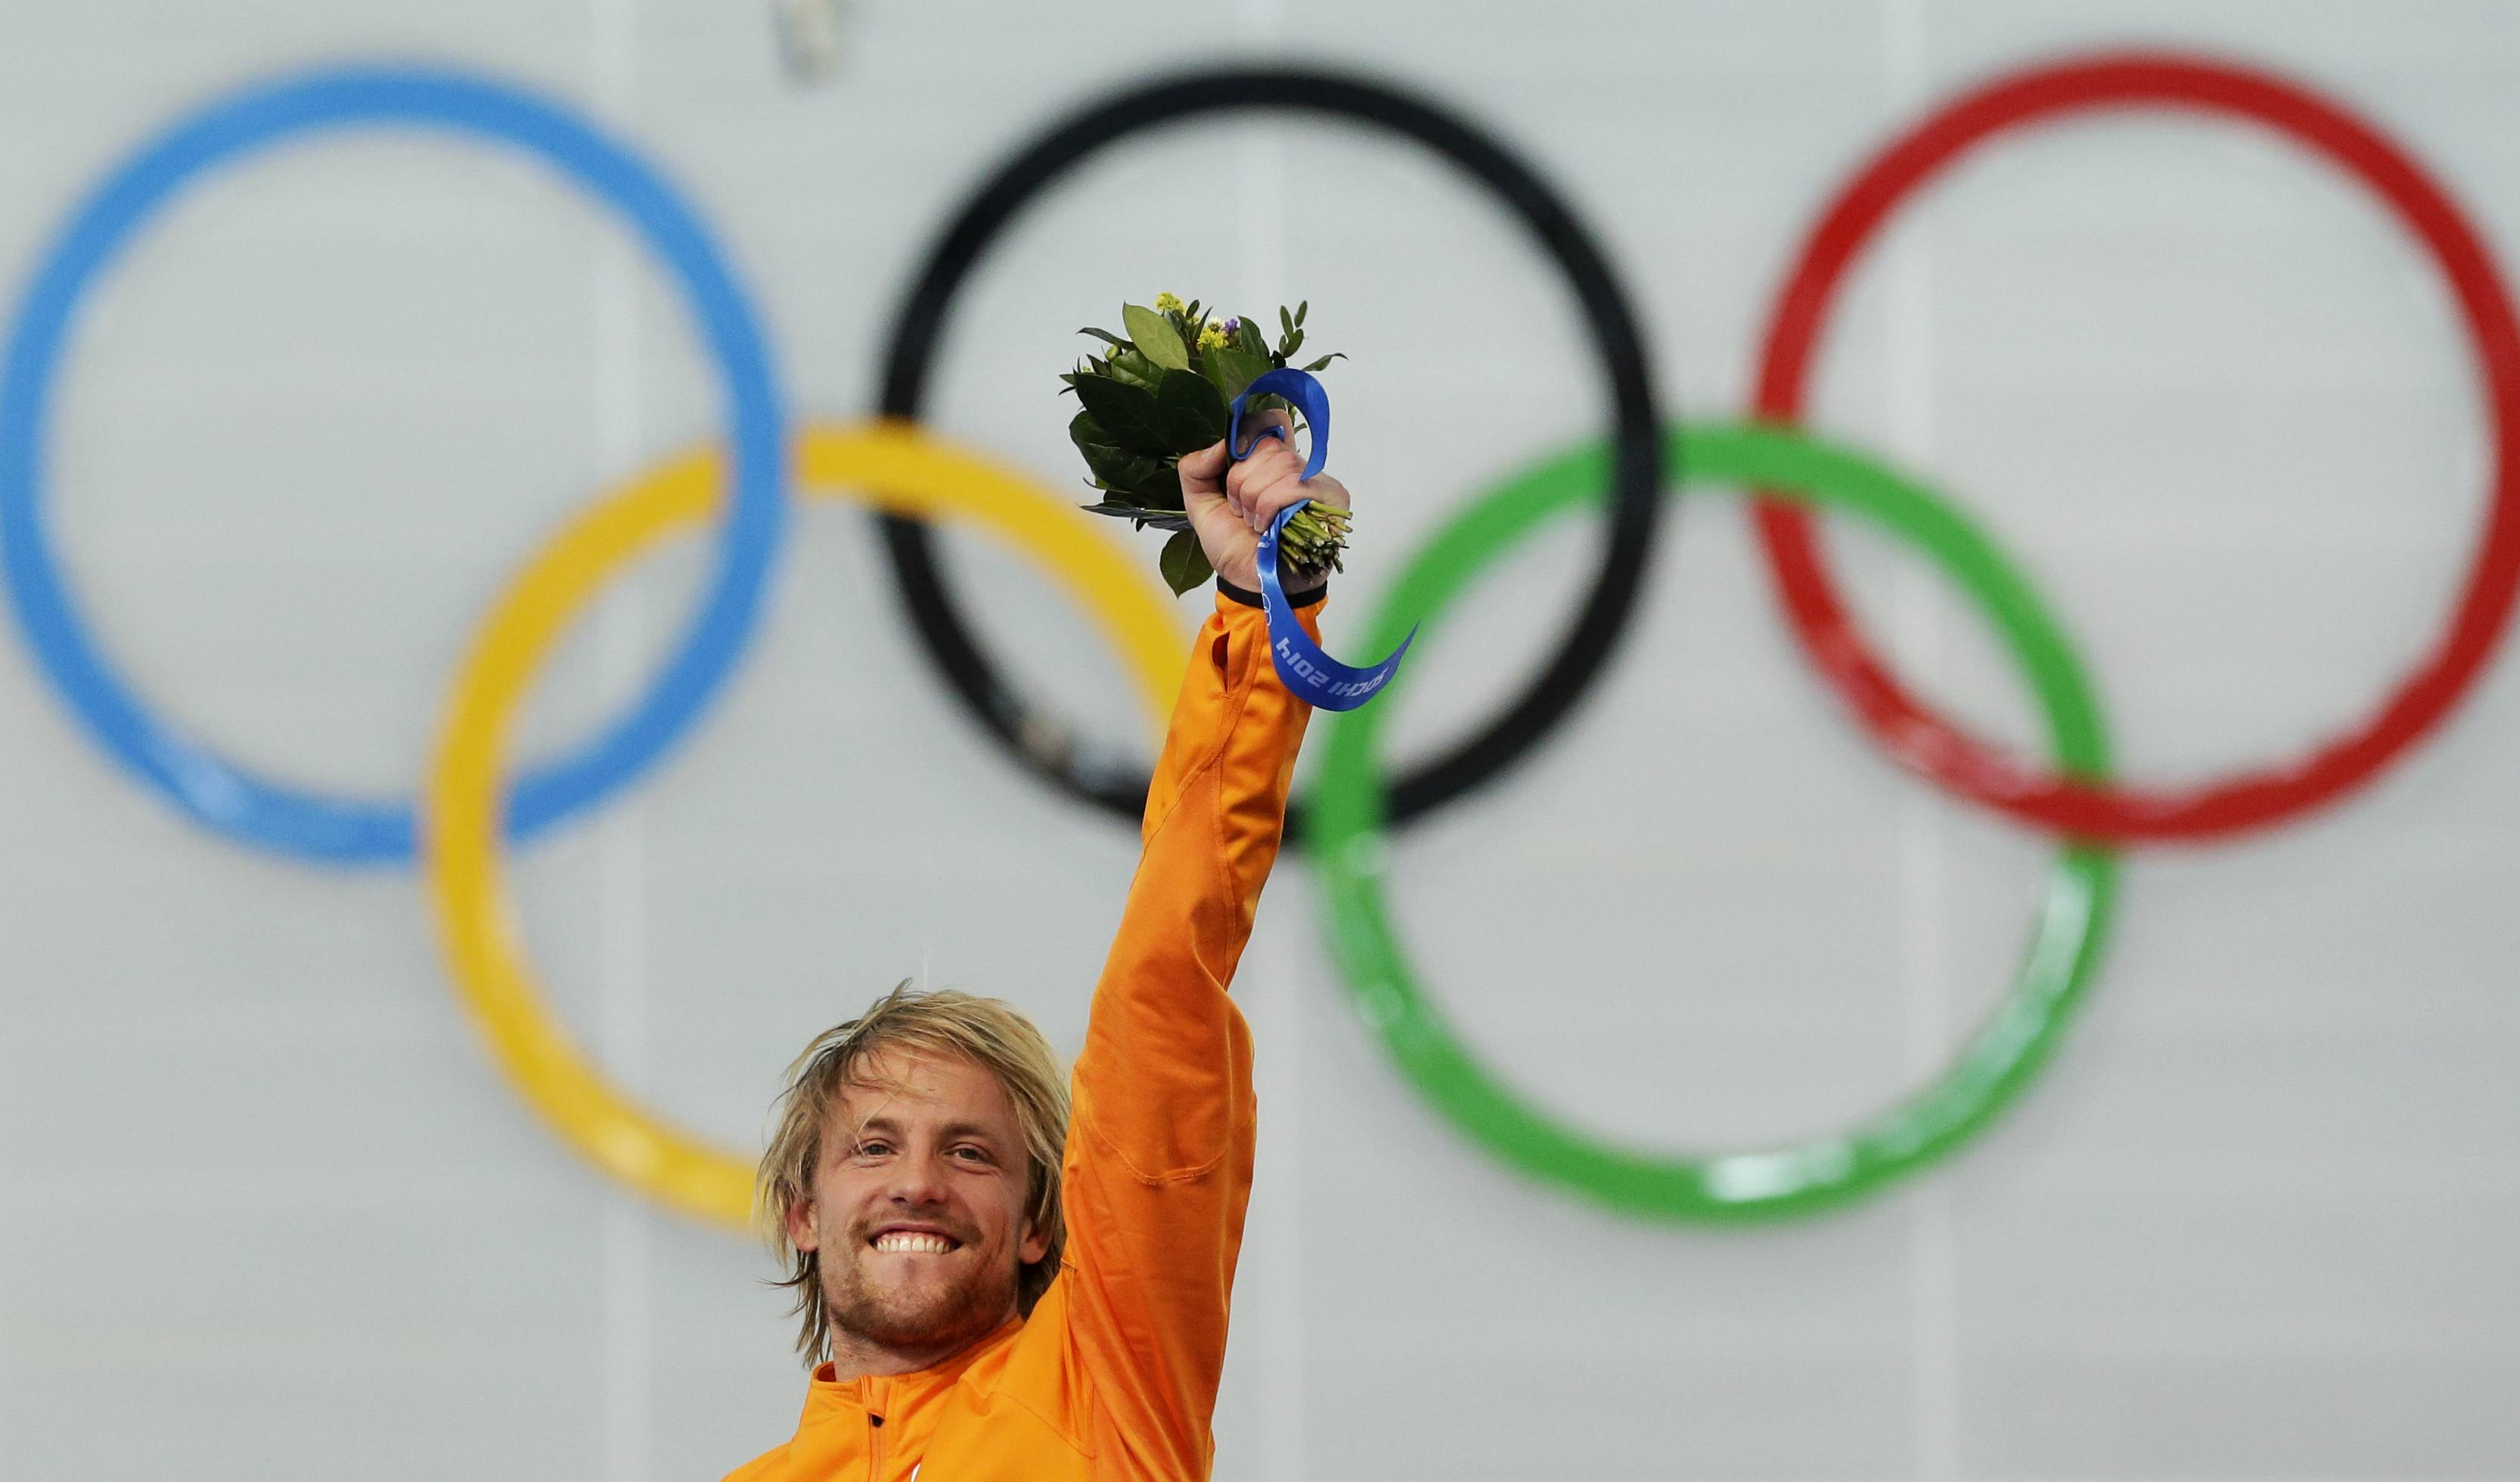 Gold medallist Michel Mulder of the Netherlands celebrates during the flower ceremony for the men's 500-meter speedskating race.